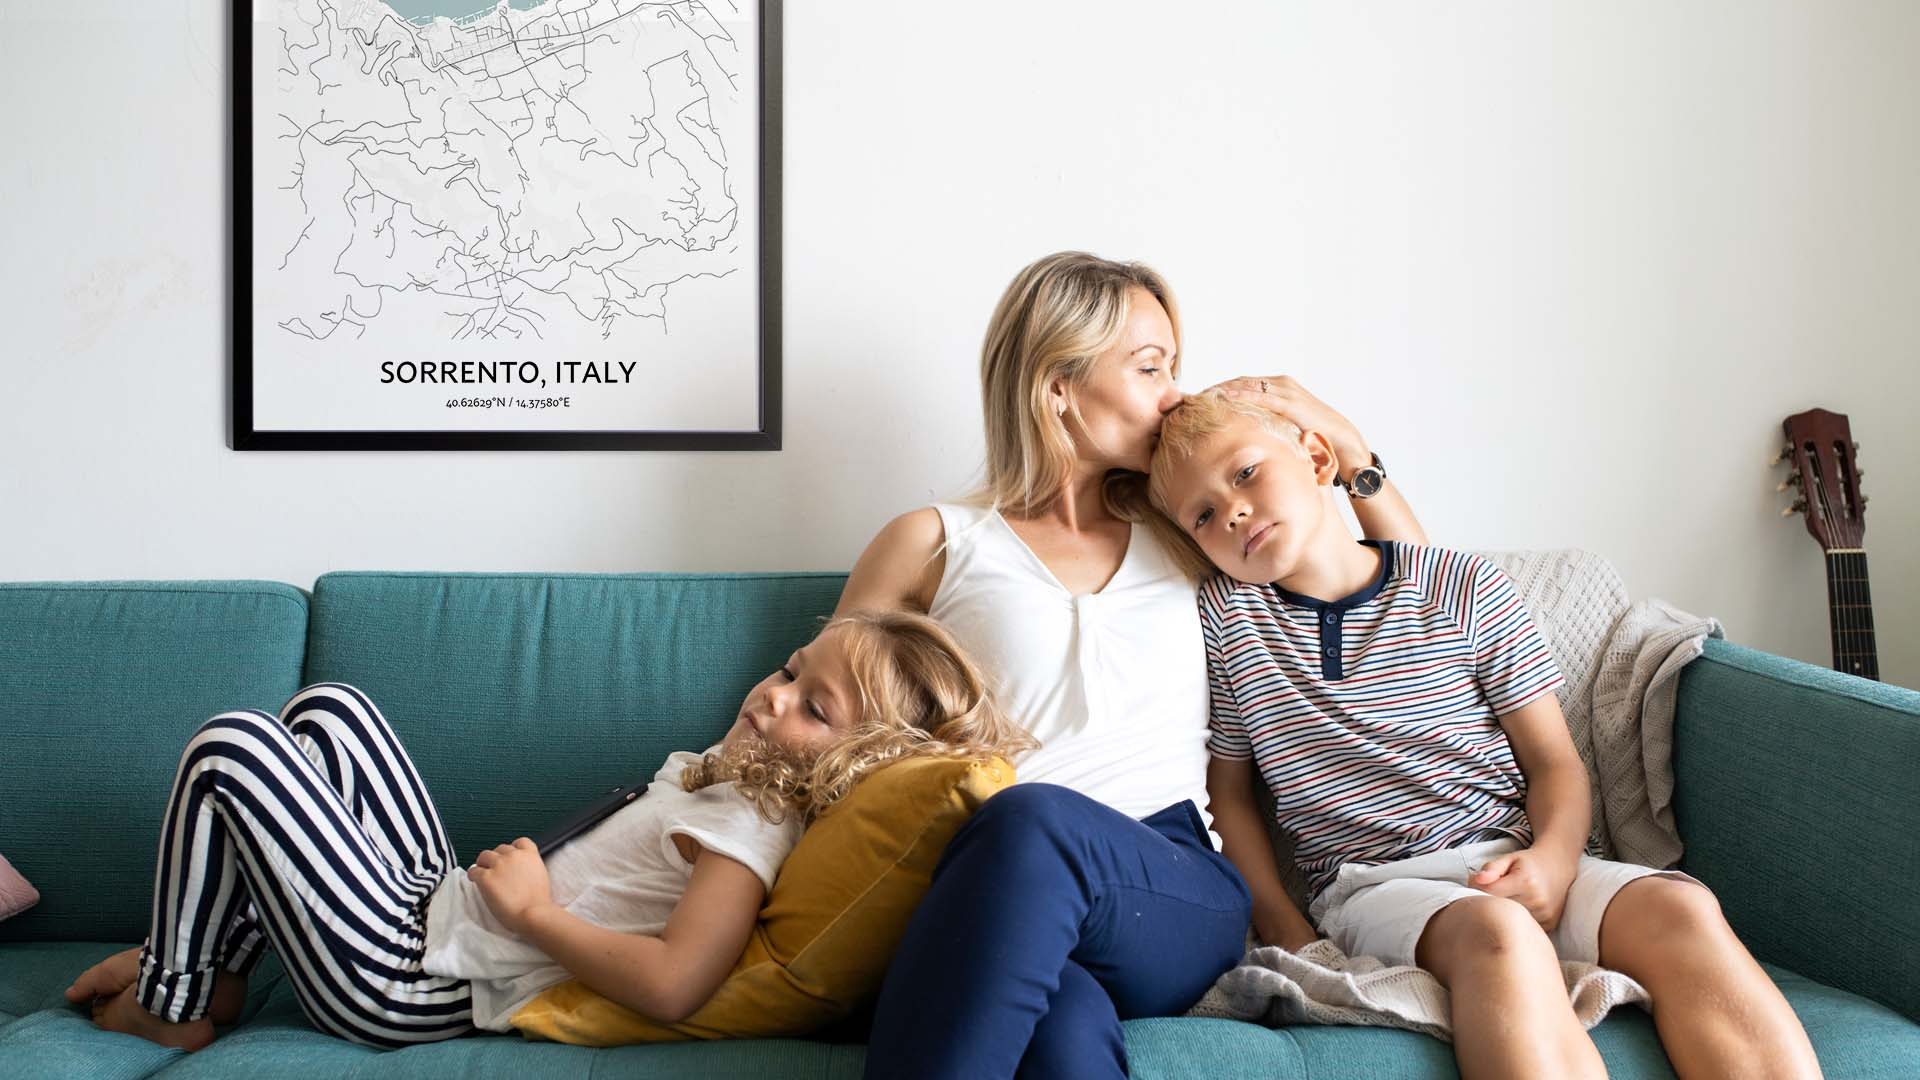 Sorrento map poster